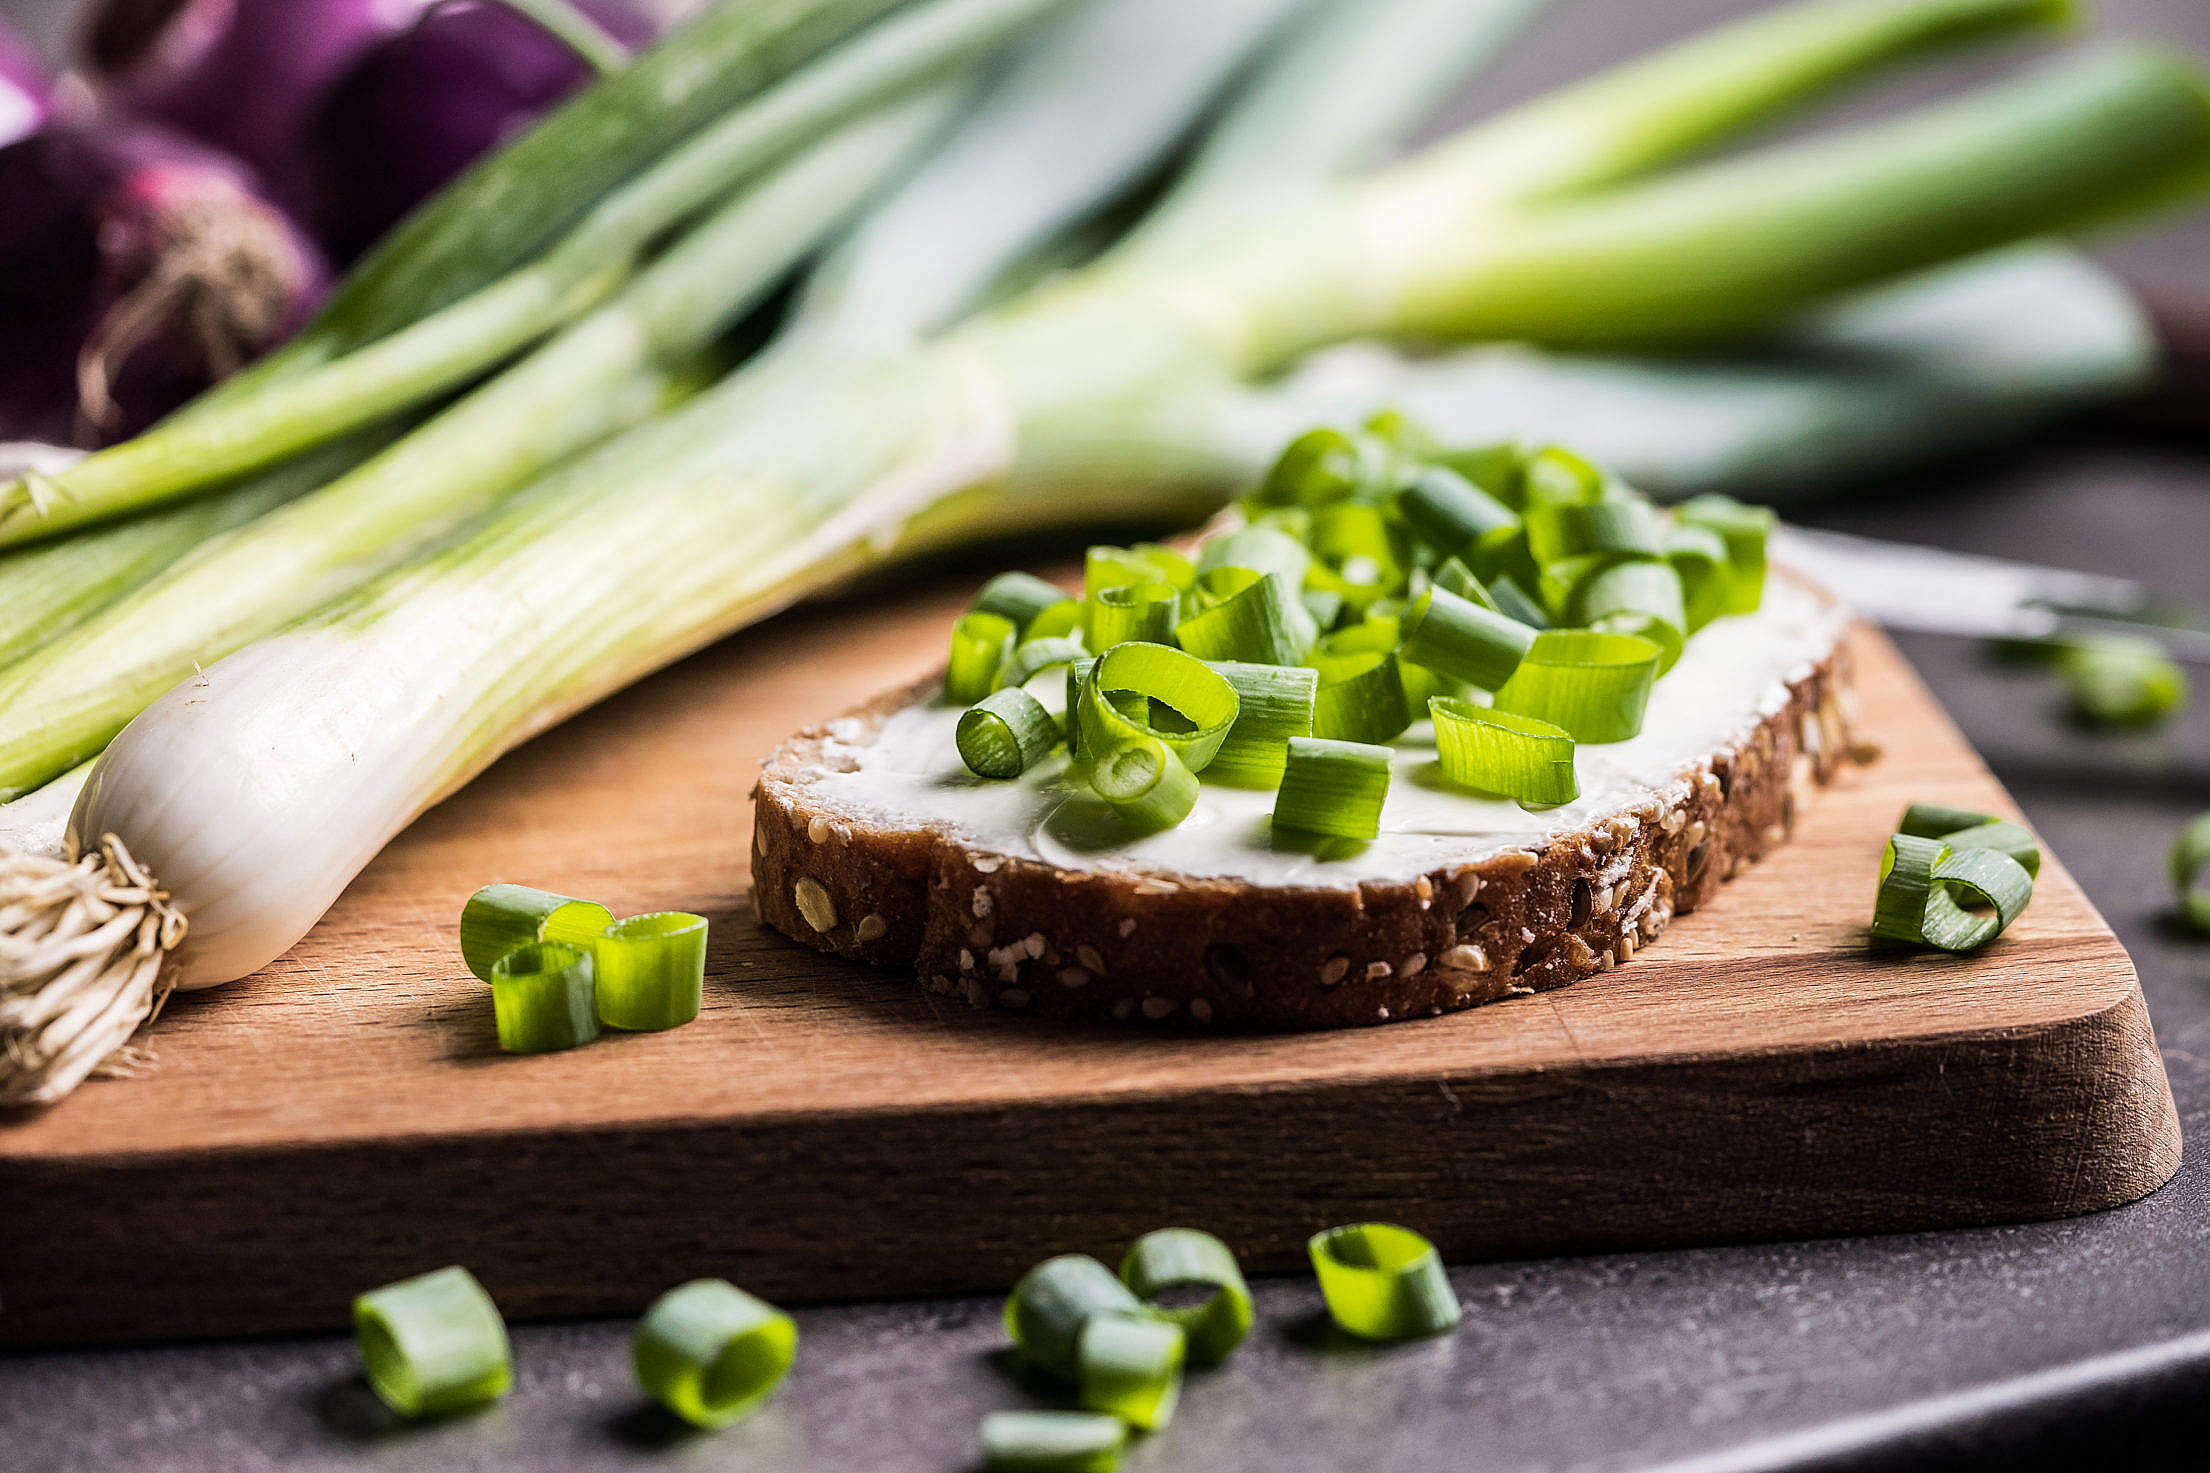 Bread with Spring Onion Free Stock Photo